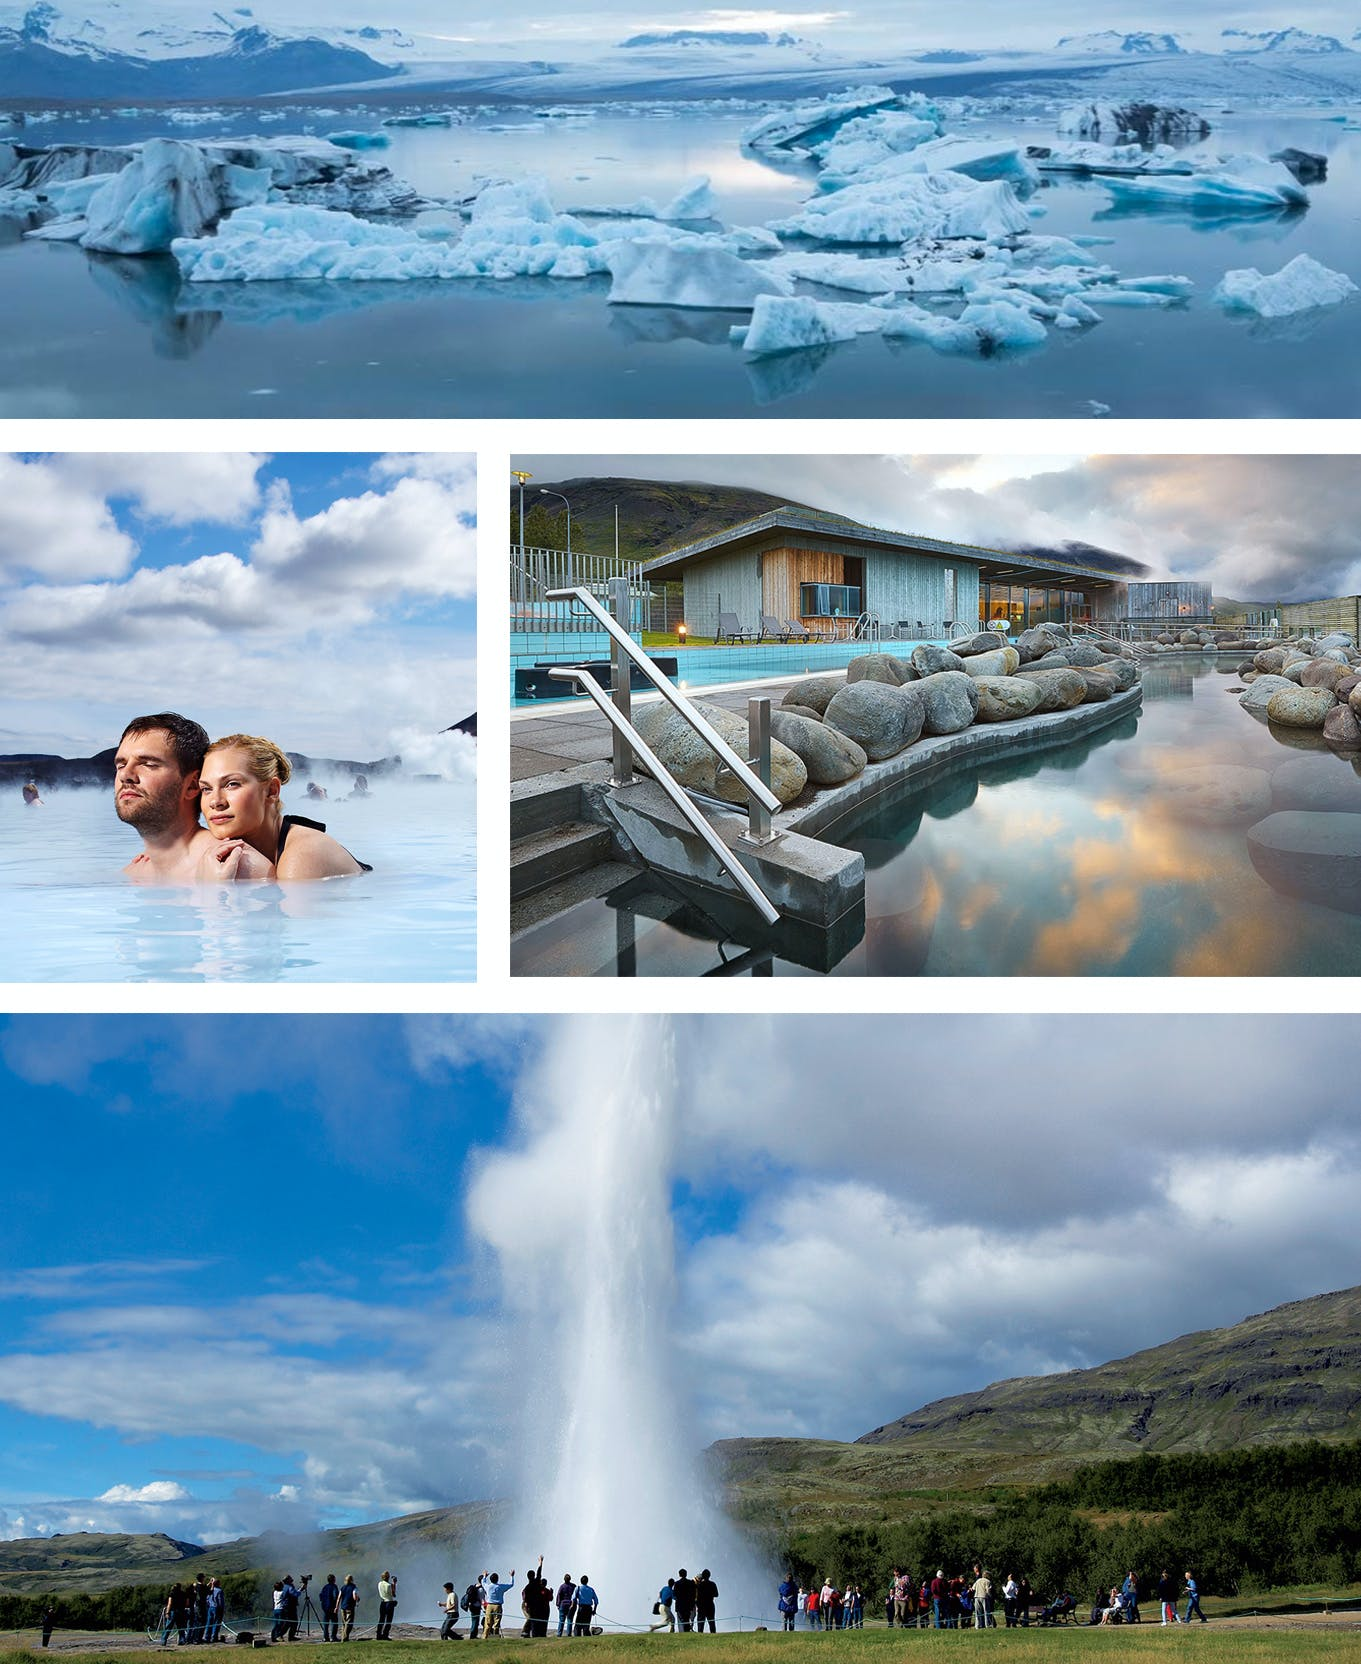 Reykjavik Excursions offer bus tours to Jokulsarlon Glacier Lagoon, the Blue Lagoon, Geysir and more.